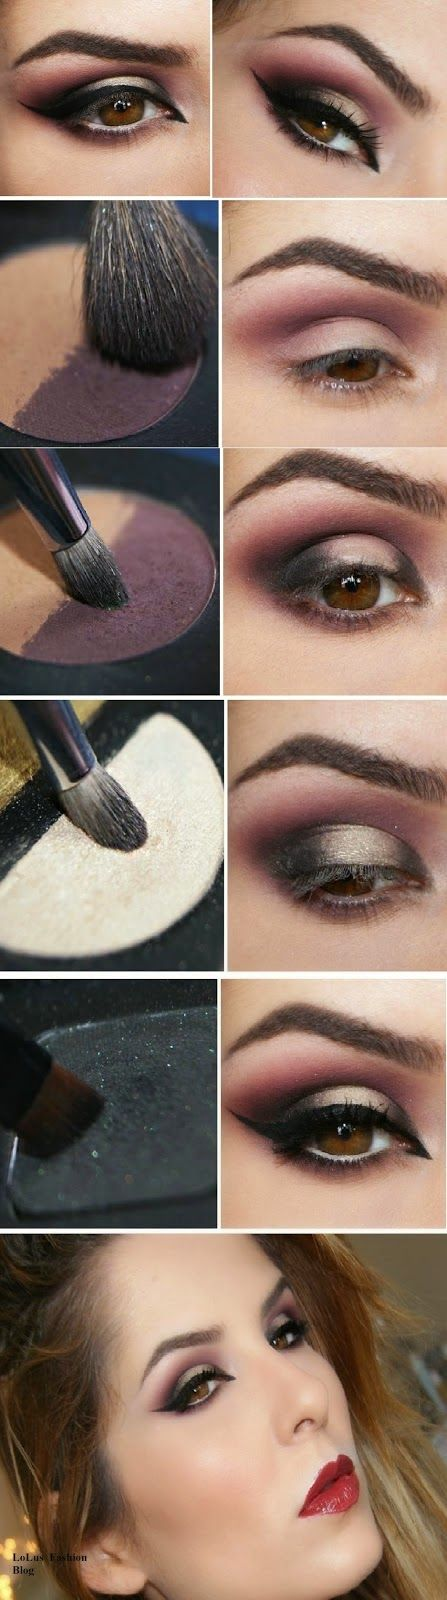 How to : Pearl - Tutorial Makeup # Step by Step